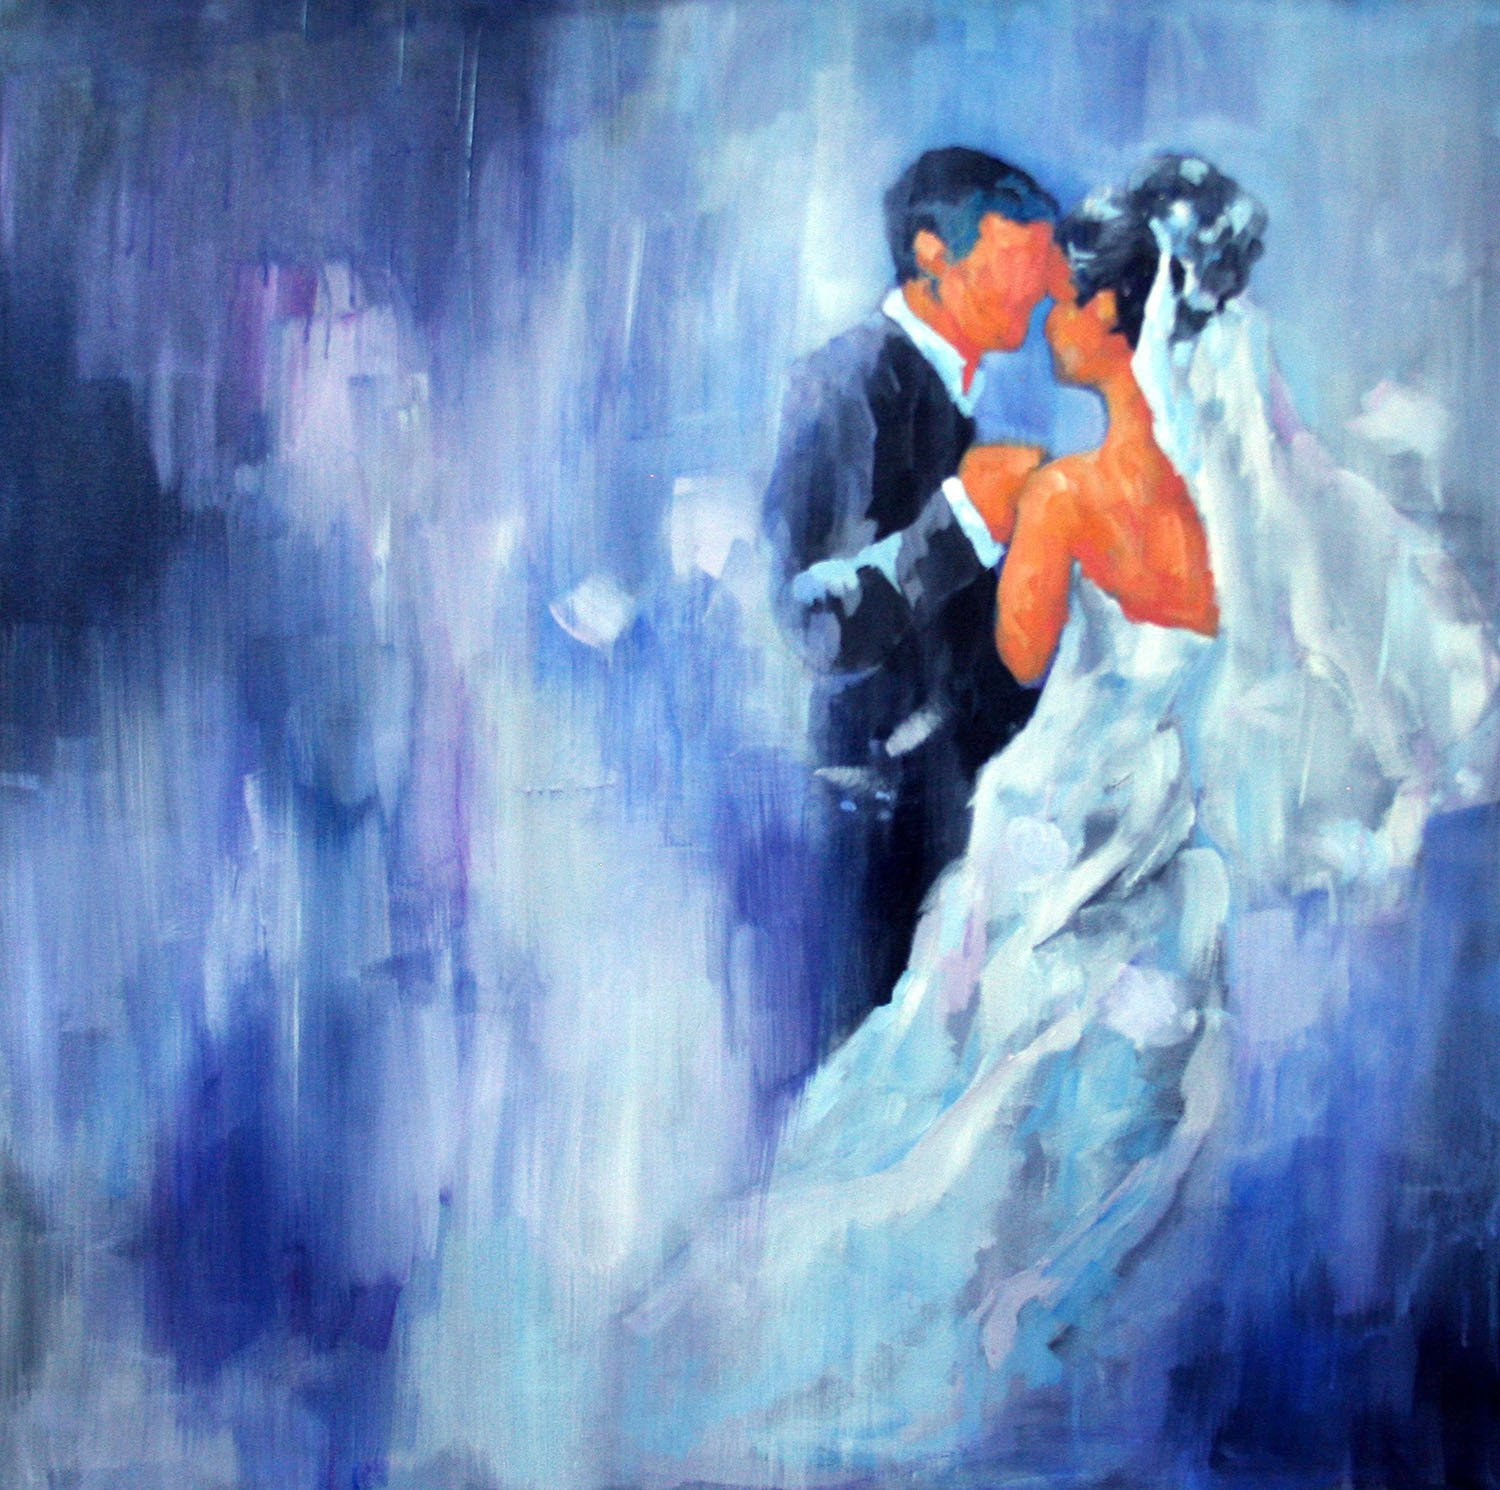 Dance of Love Painting - Posters by Sina Irani | Buy Posters, Frames ...